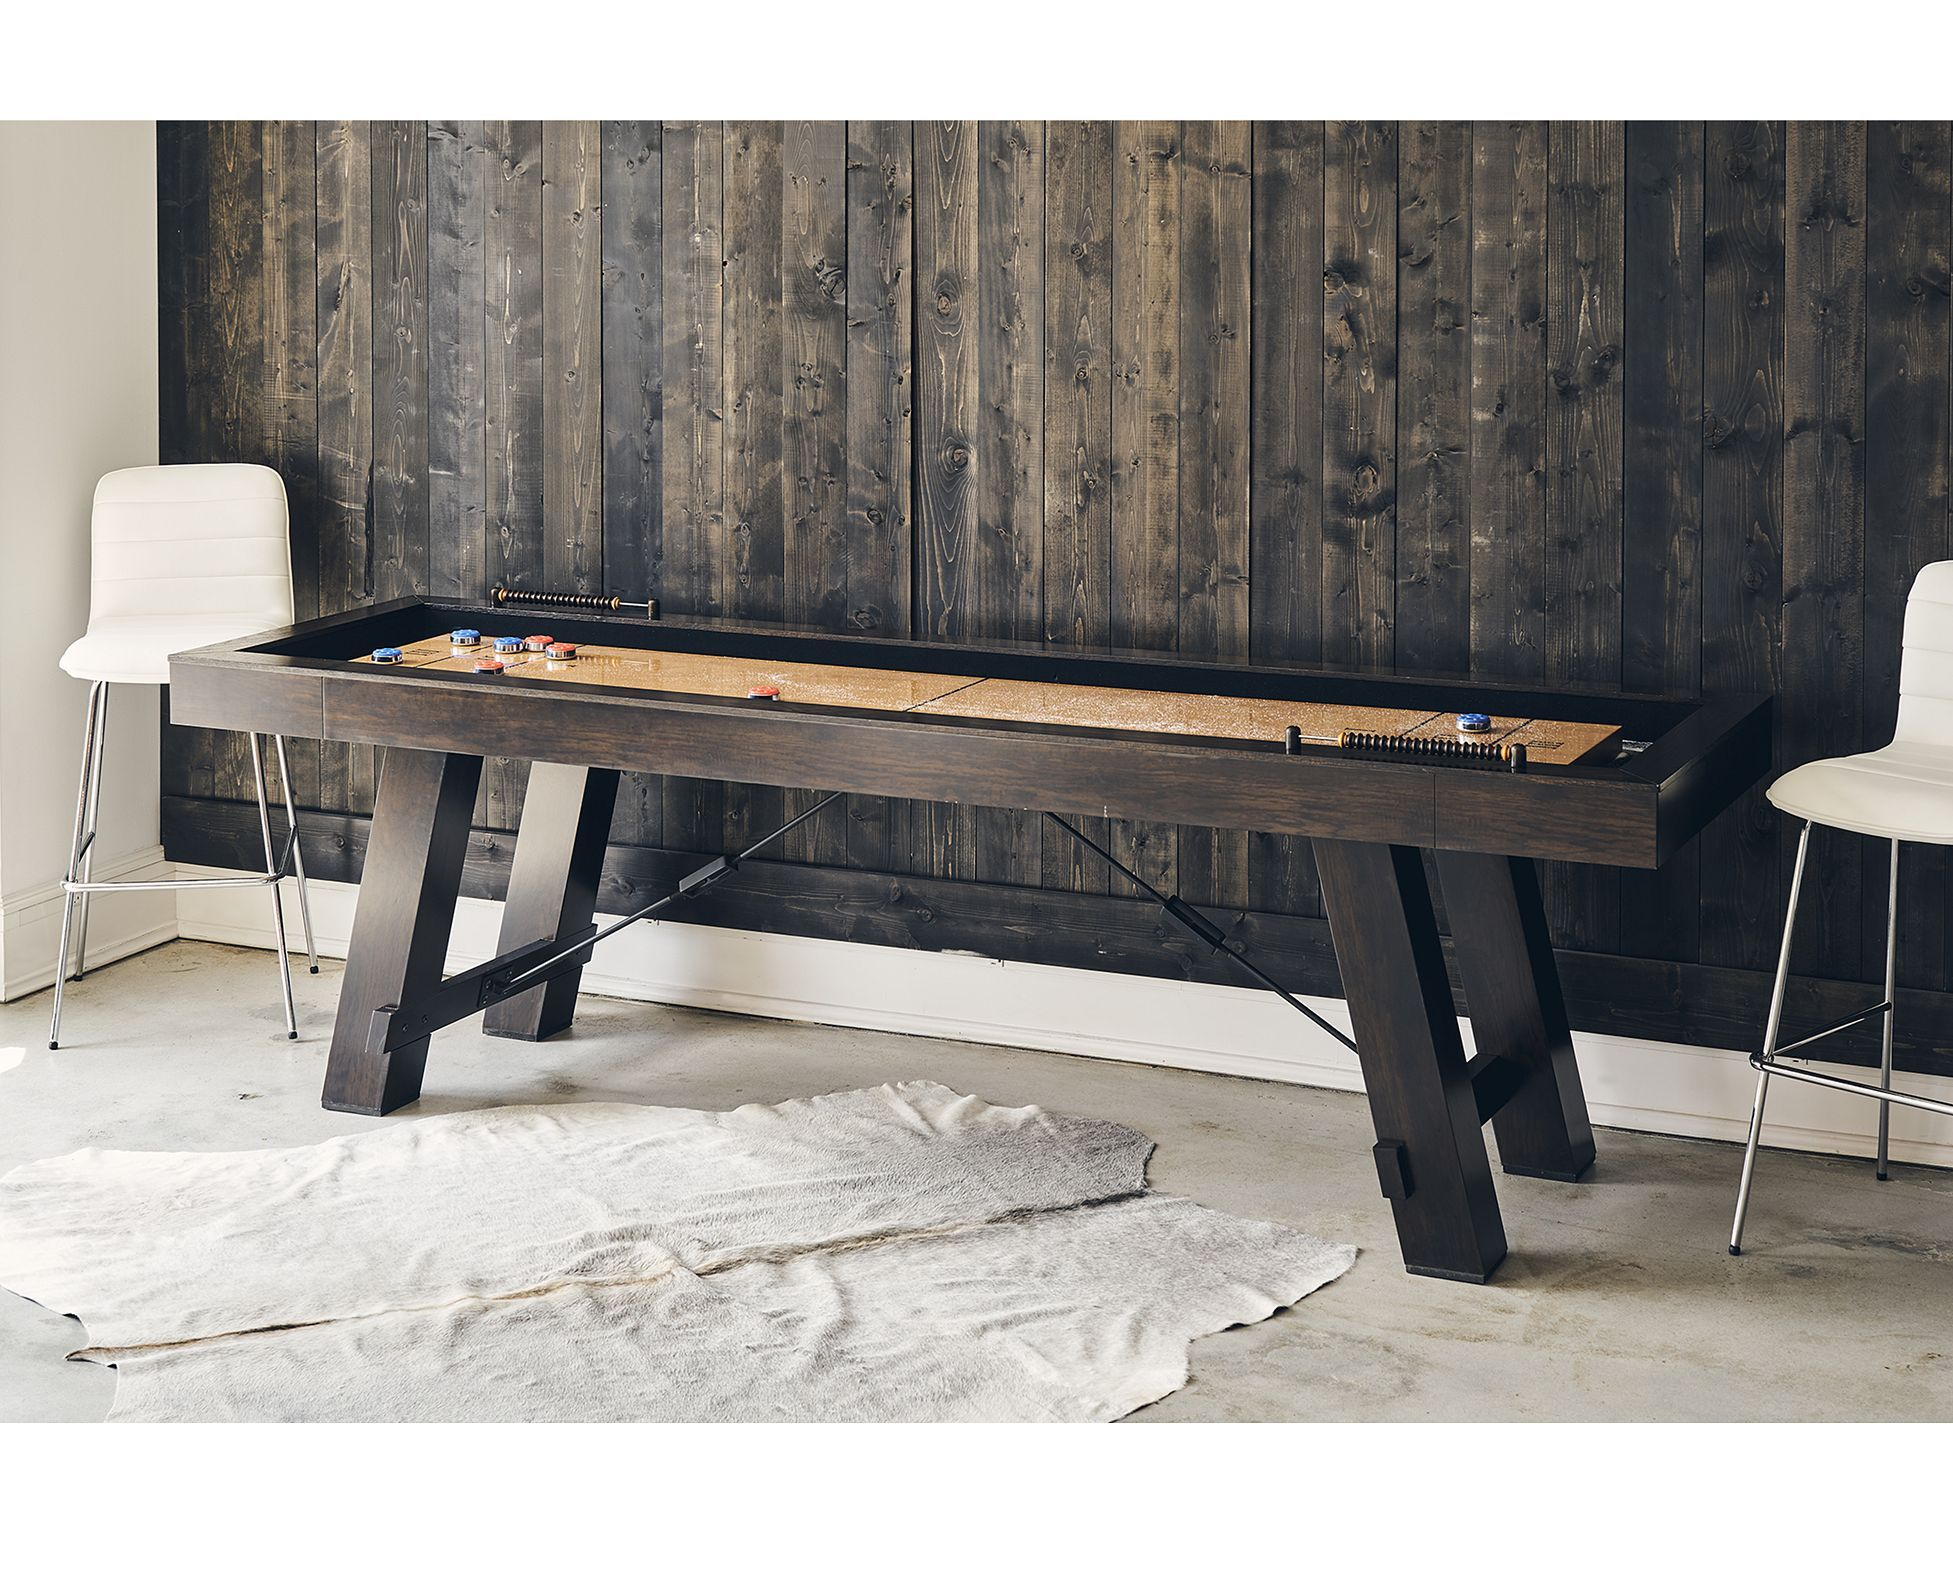 The Titus Shuffleboard Table Adds Fun To Your Family Recreation Room Den Or Basement Furniturerow Gamer Shuffleboard Table Rowe Furniture Game Room Decor